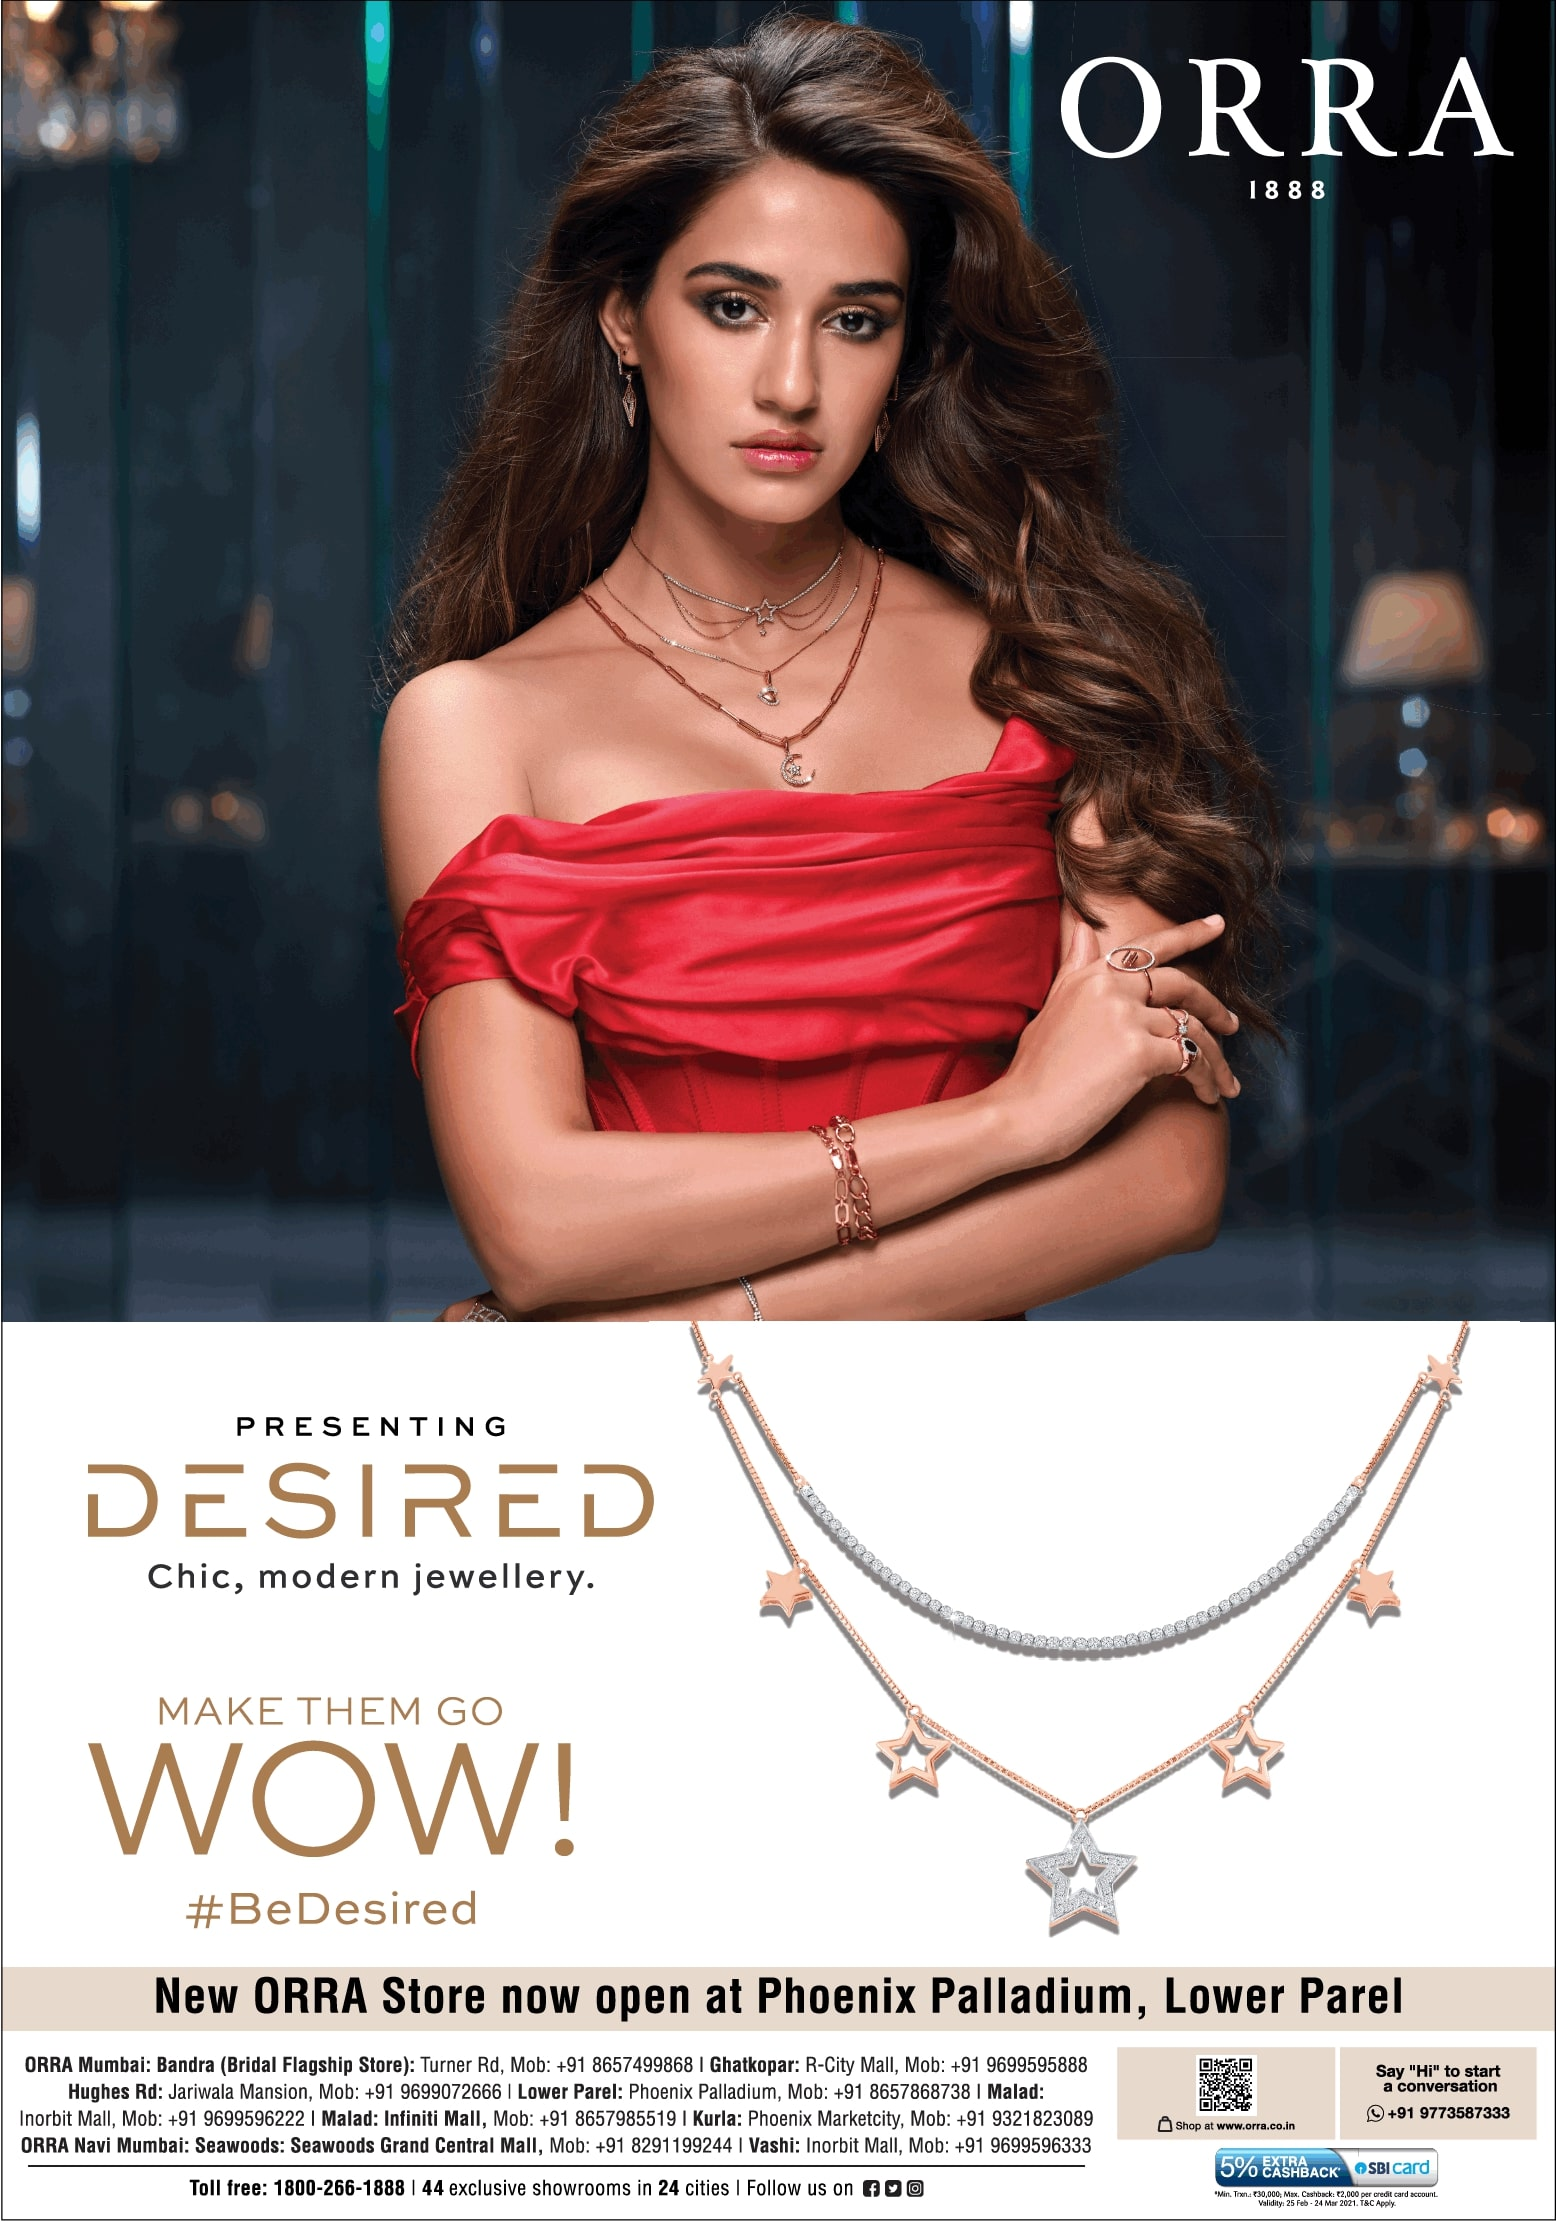 orra-presenting-desired-chic-modern-jewellery-ad-bombay-times-27-02-2021